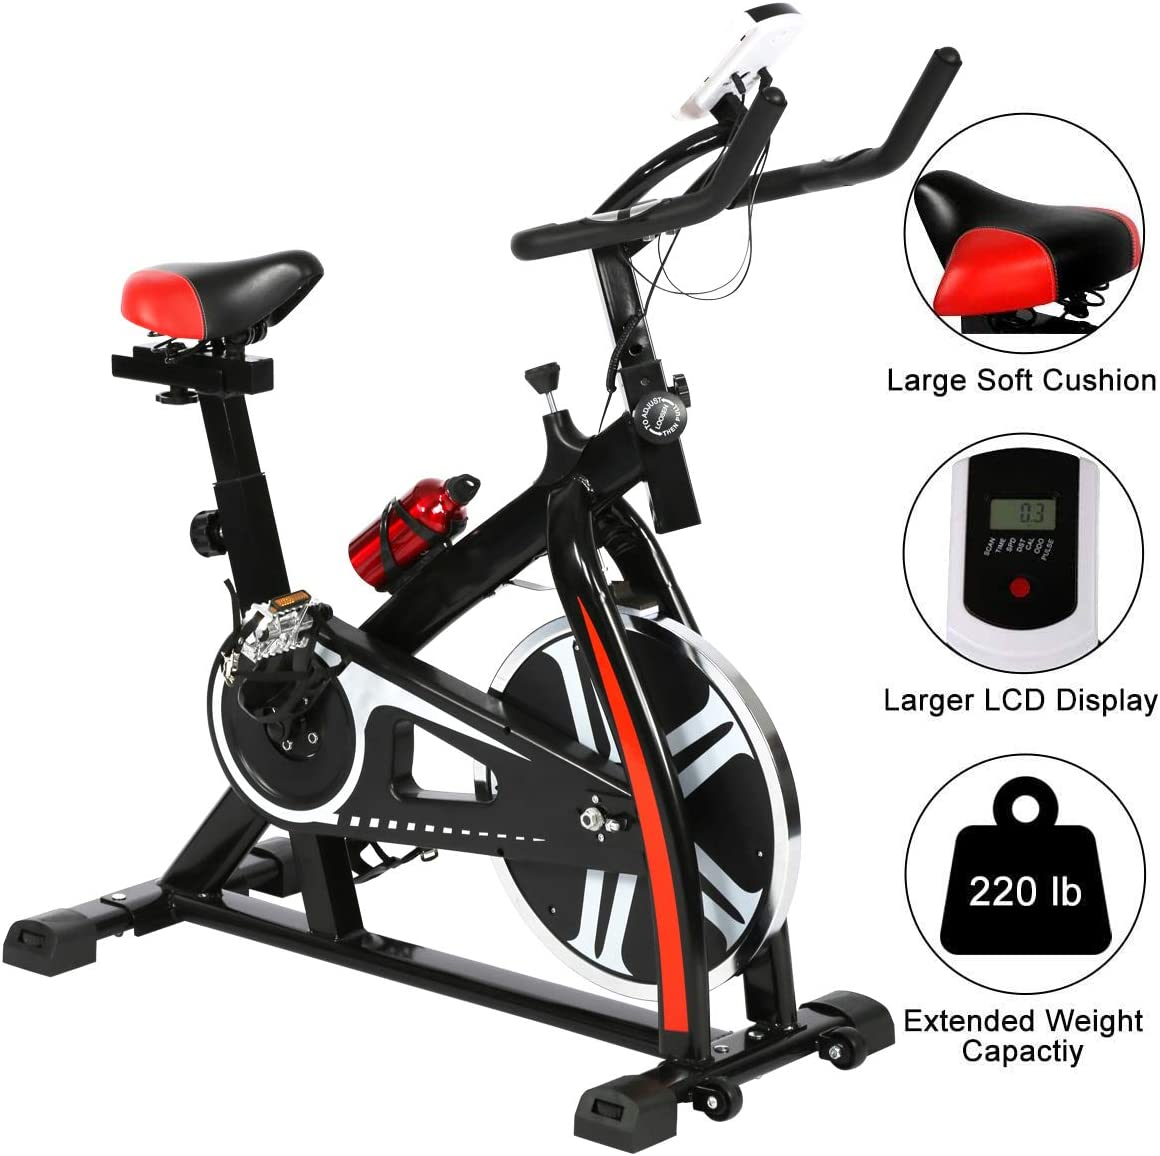 Heavy Duty Exercise Bike Bicycle Indoor Home Gym Cycling Cardio Fitness Workout